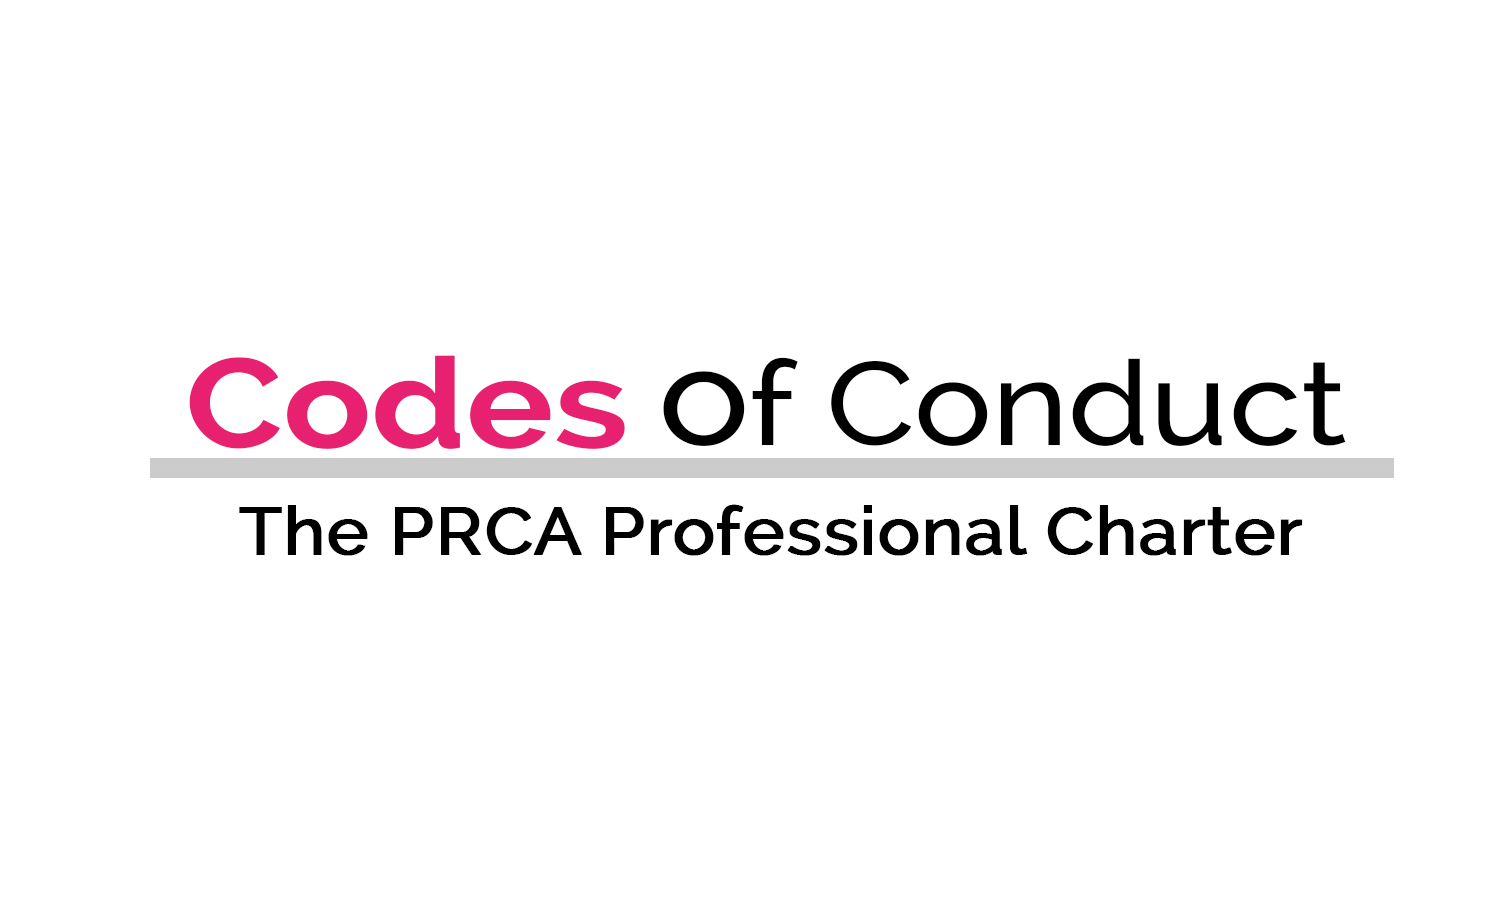 The PRCA Professional Charter and Codes of Conduct